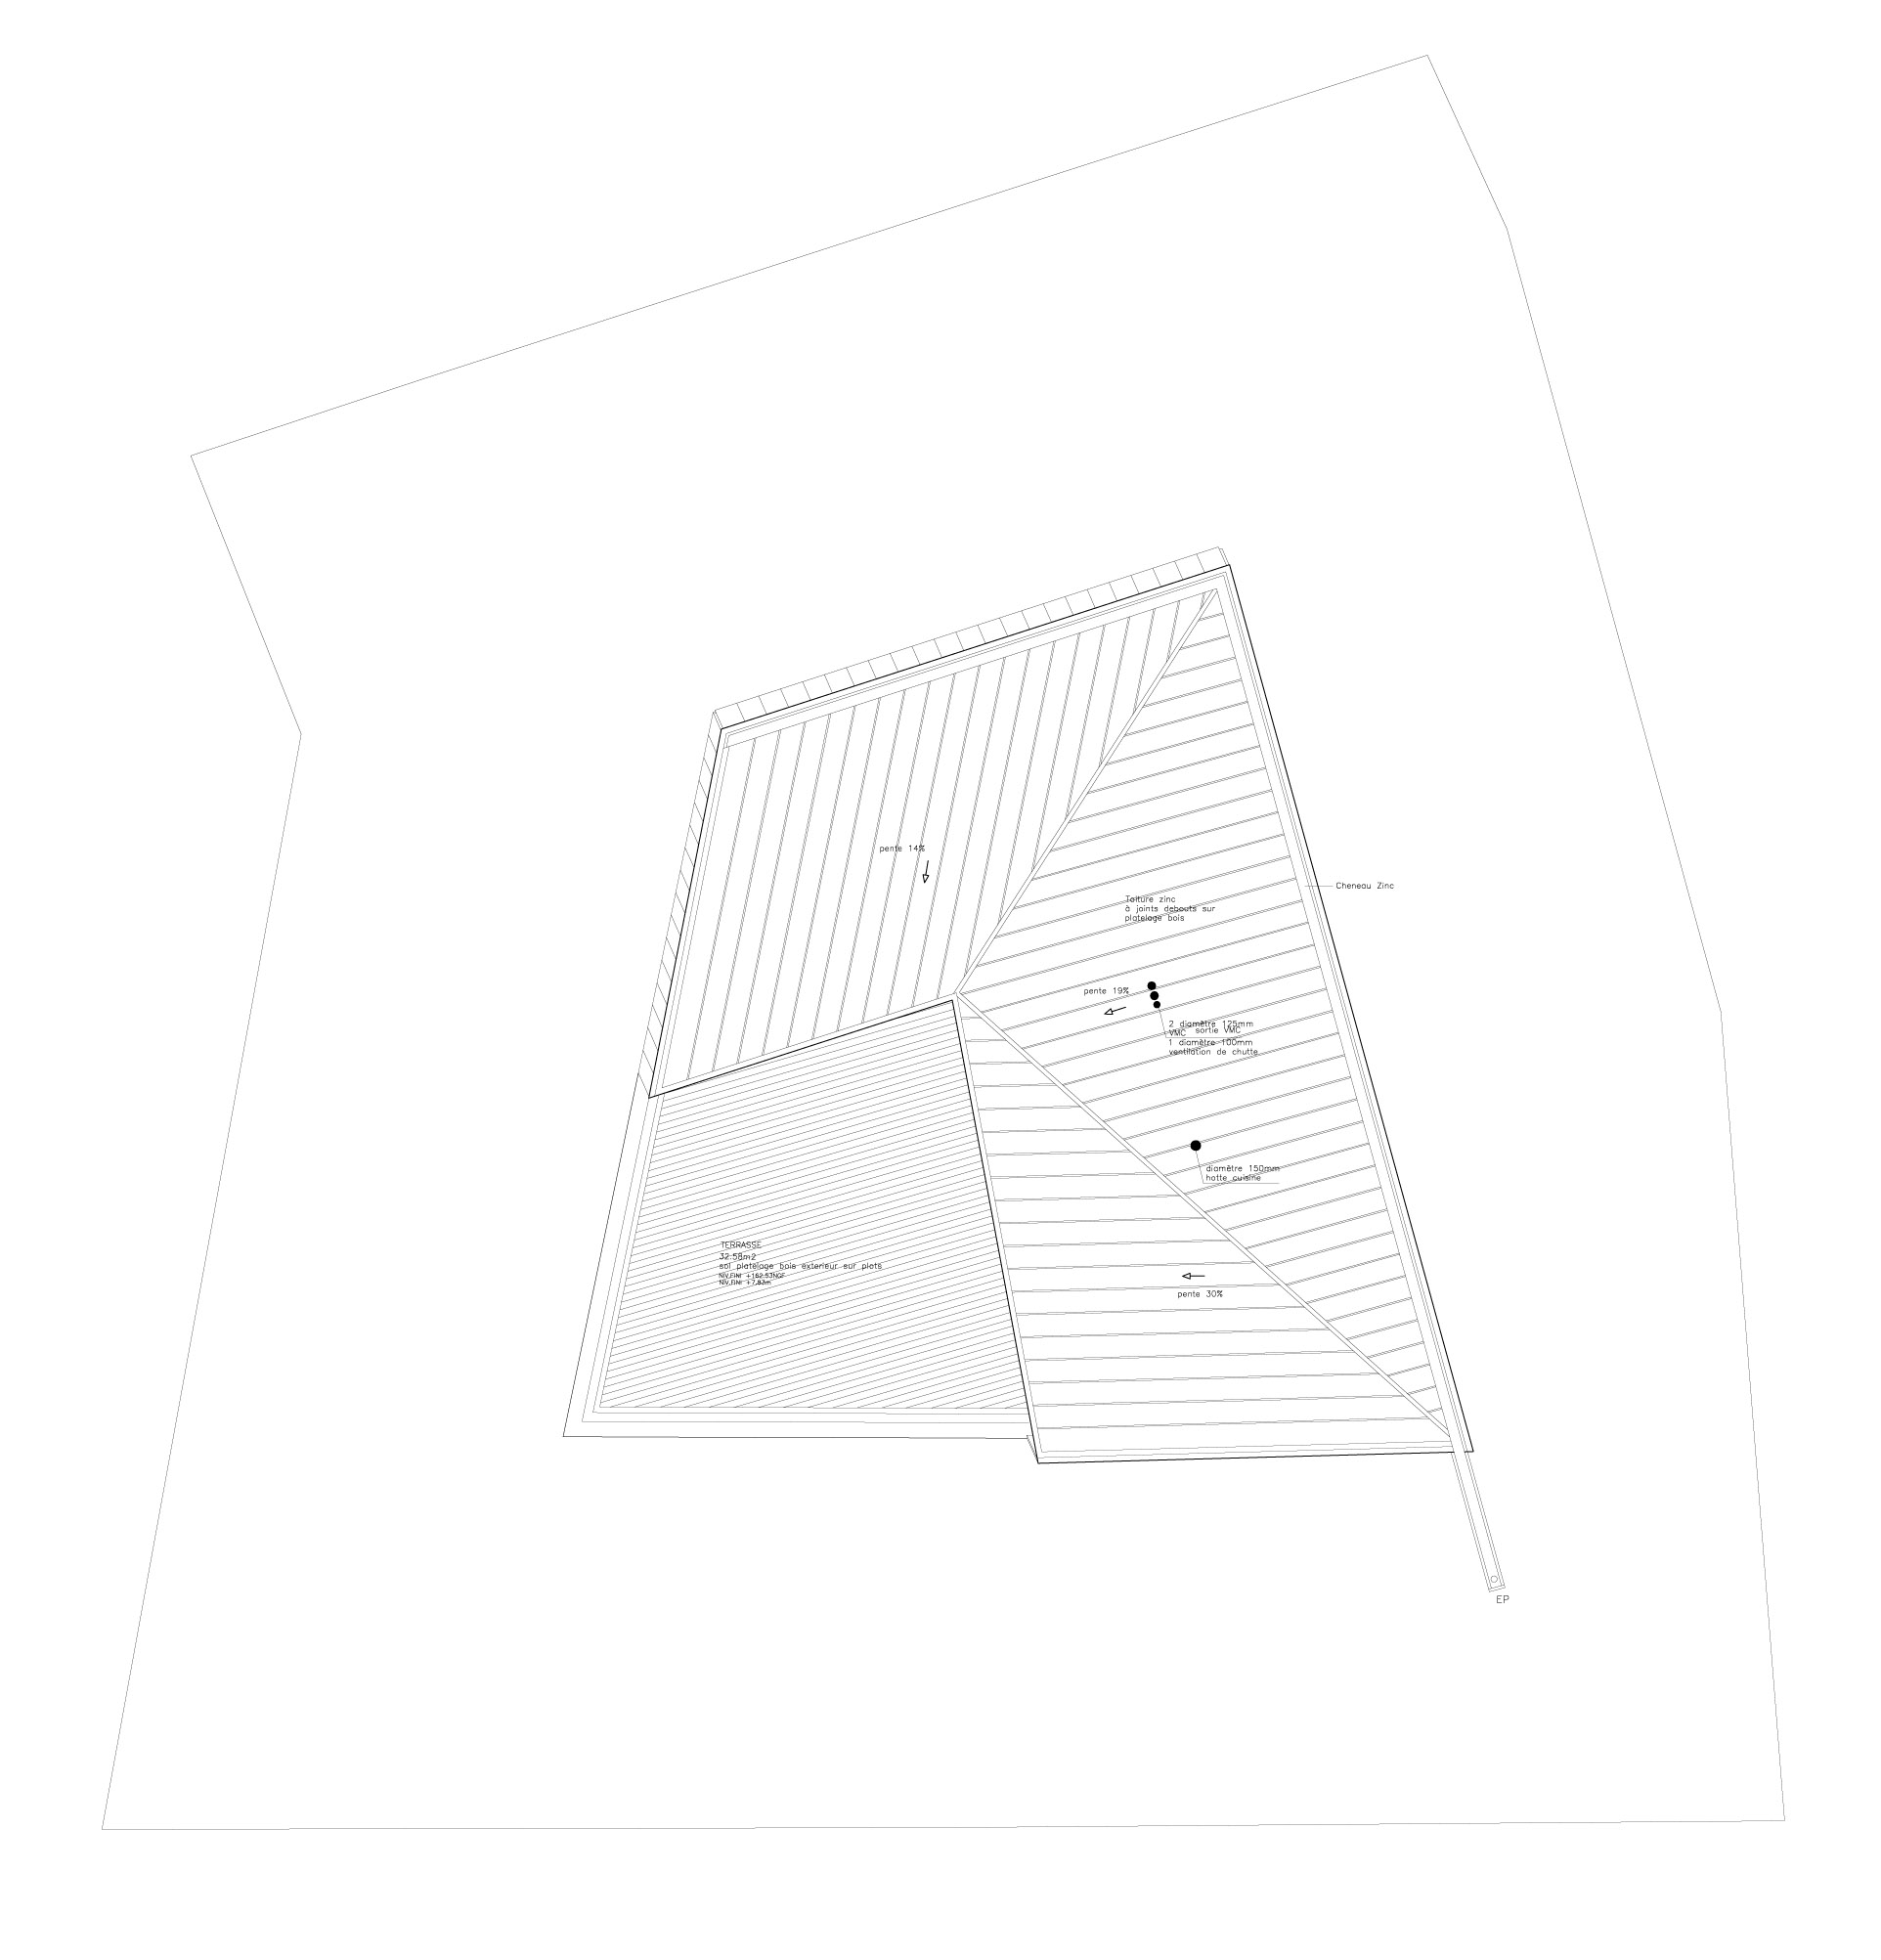 1148470610-planta-techos roof plan